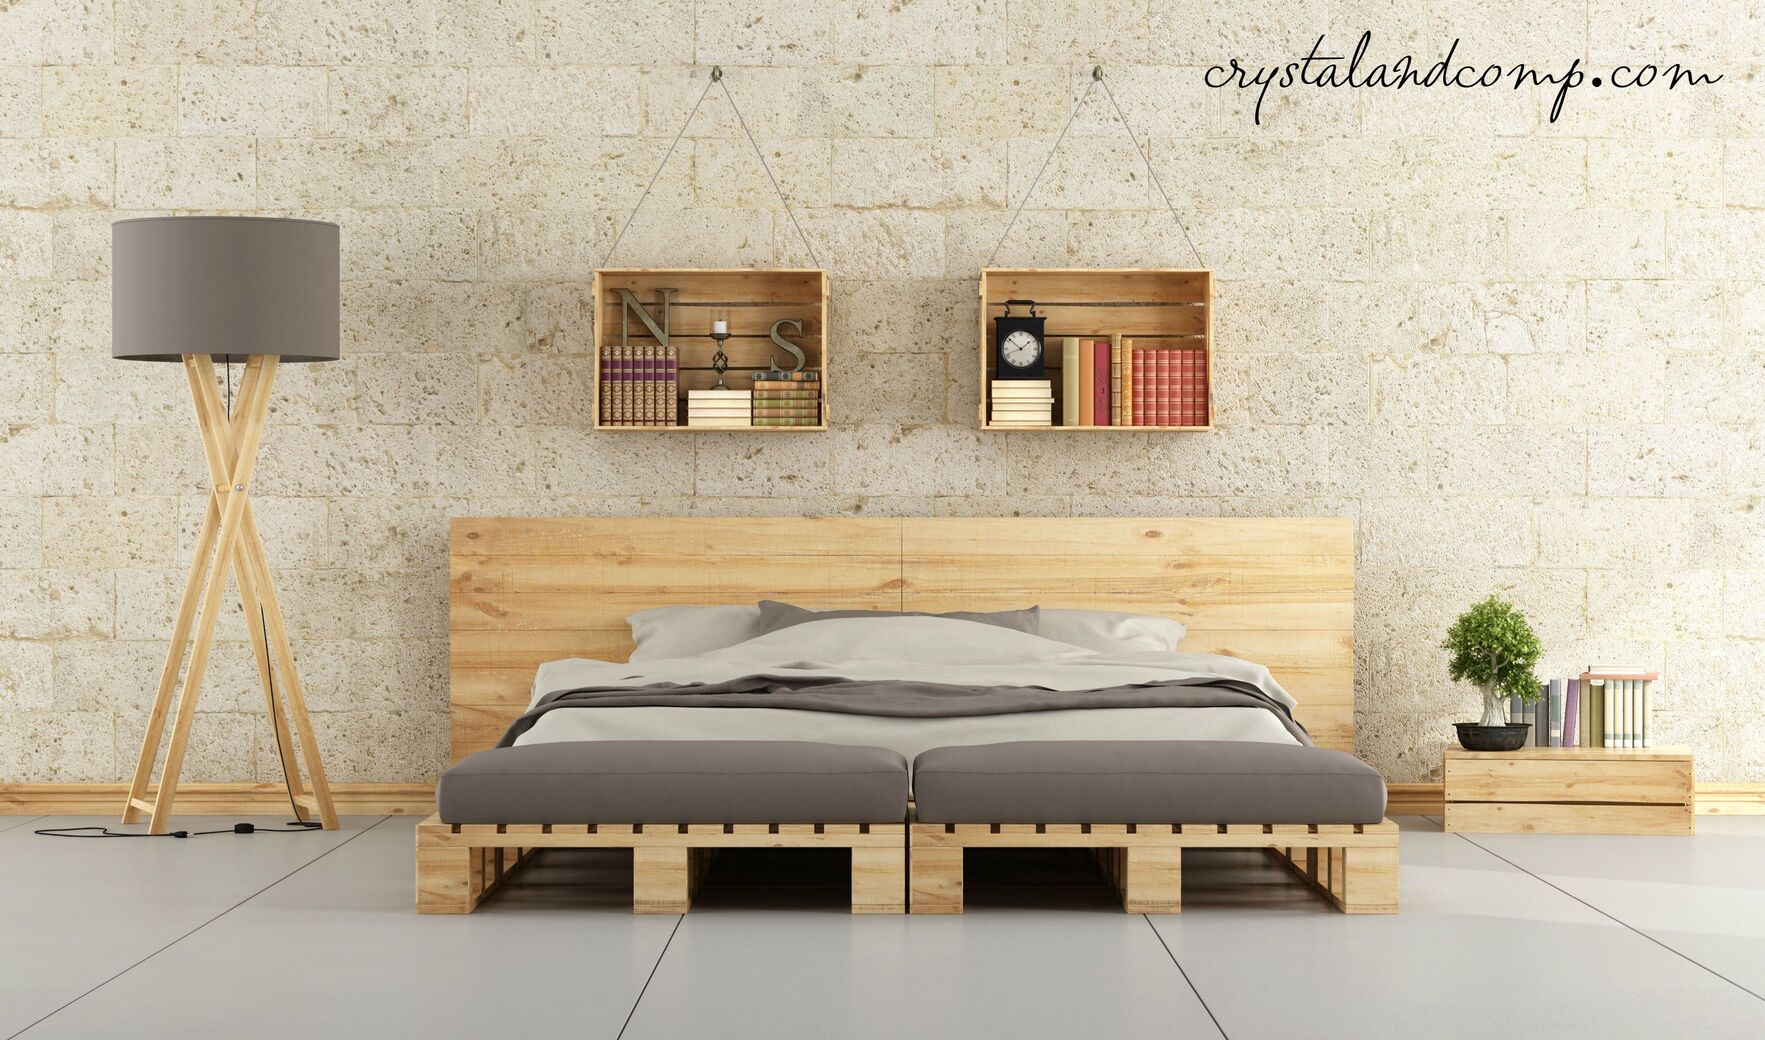 Bedroom Storage Trunk Pallet Projects